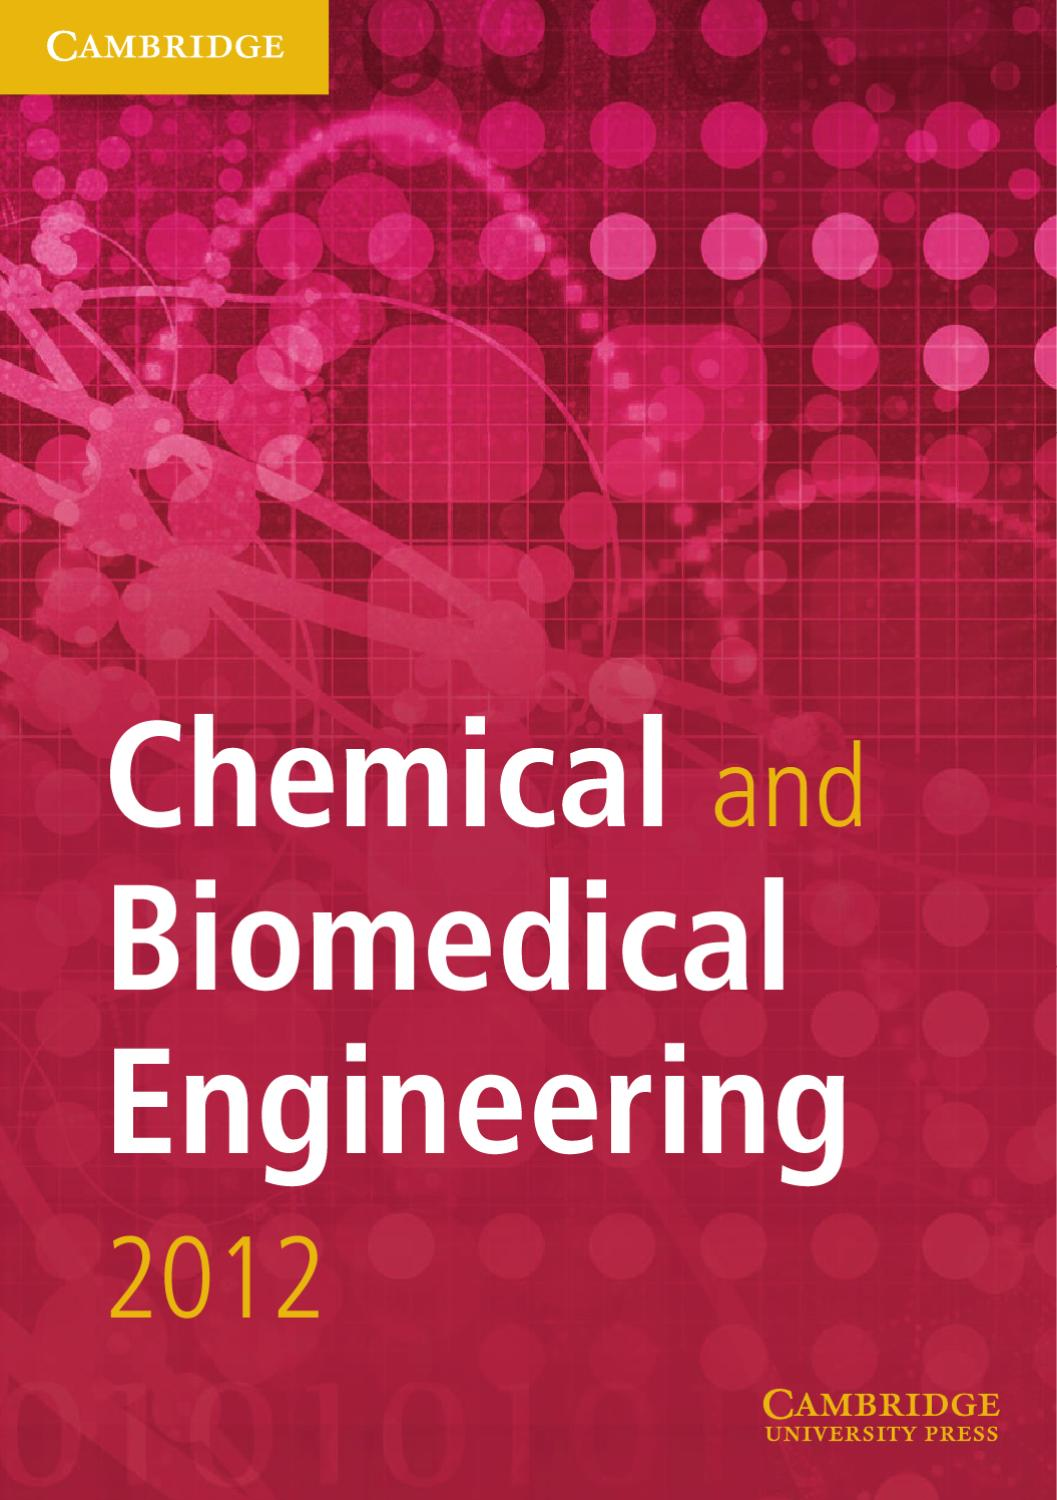 Chemical and Biomedical Engineering Cluster 2012 by Cambridge University  Press - issuu